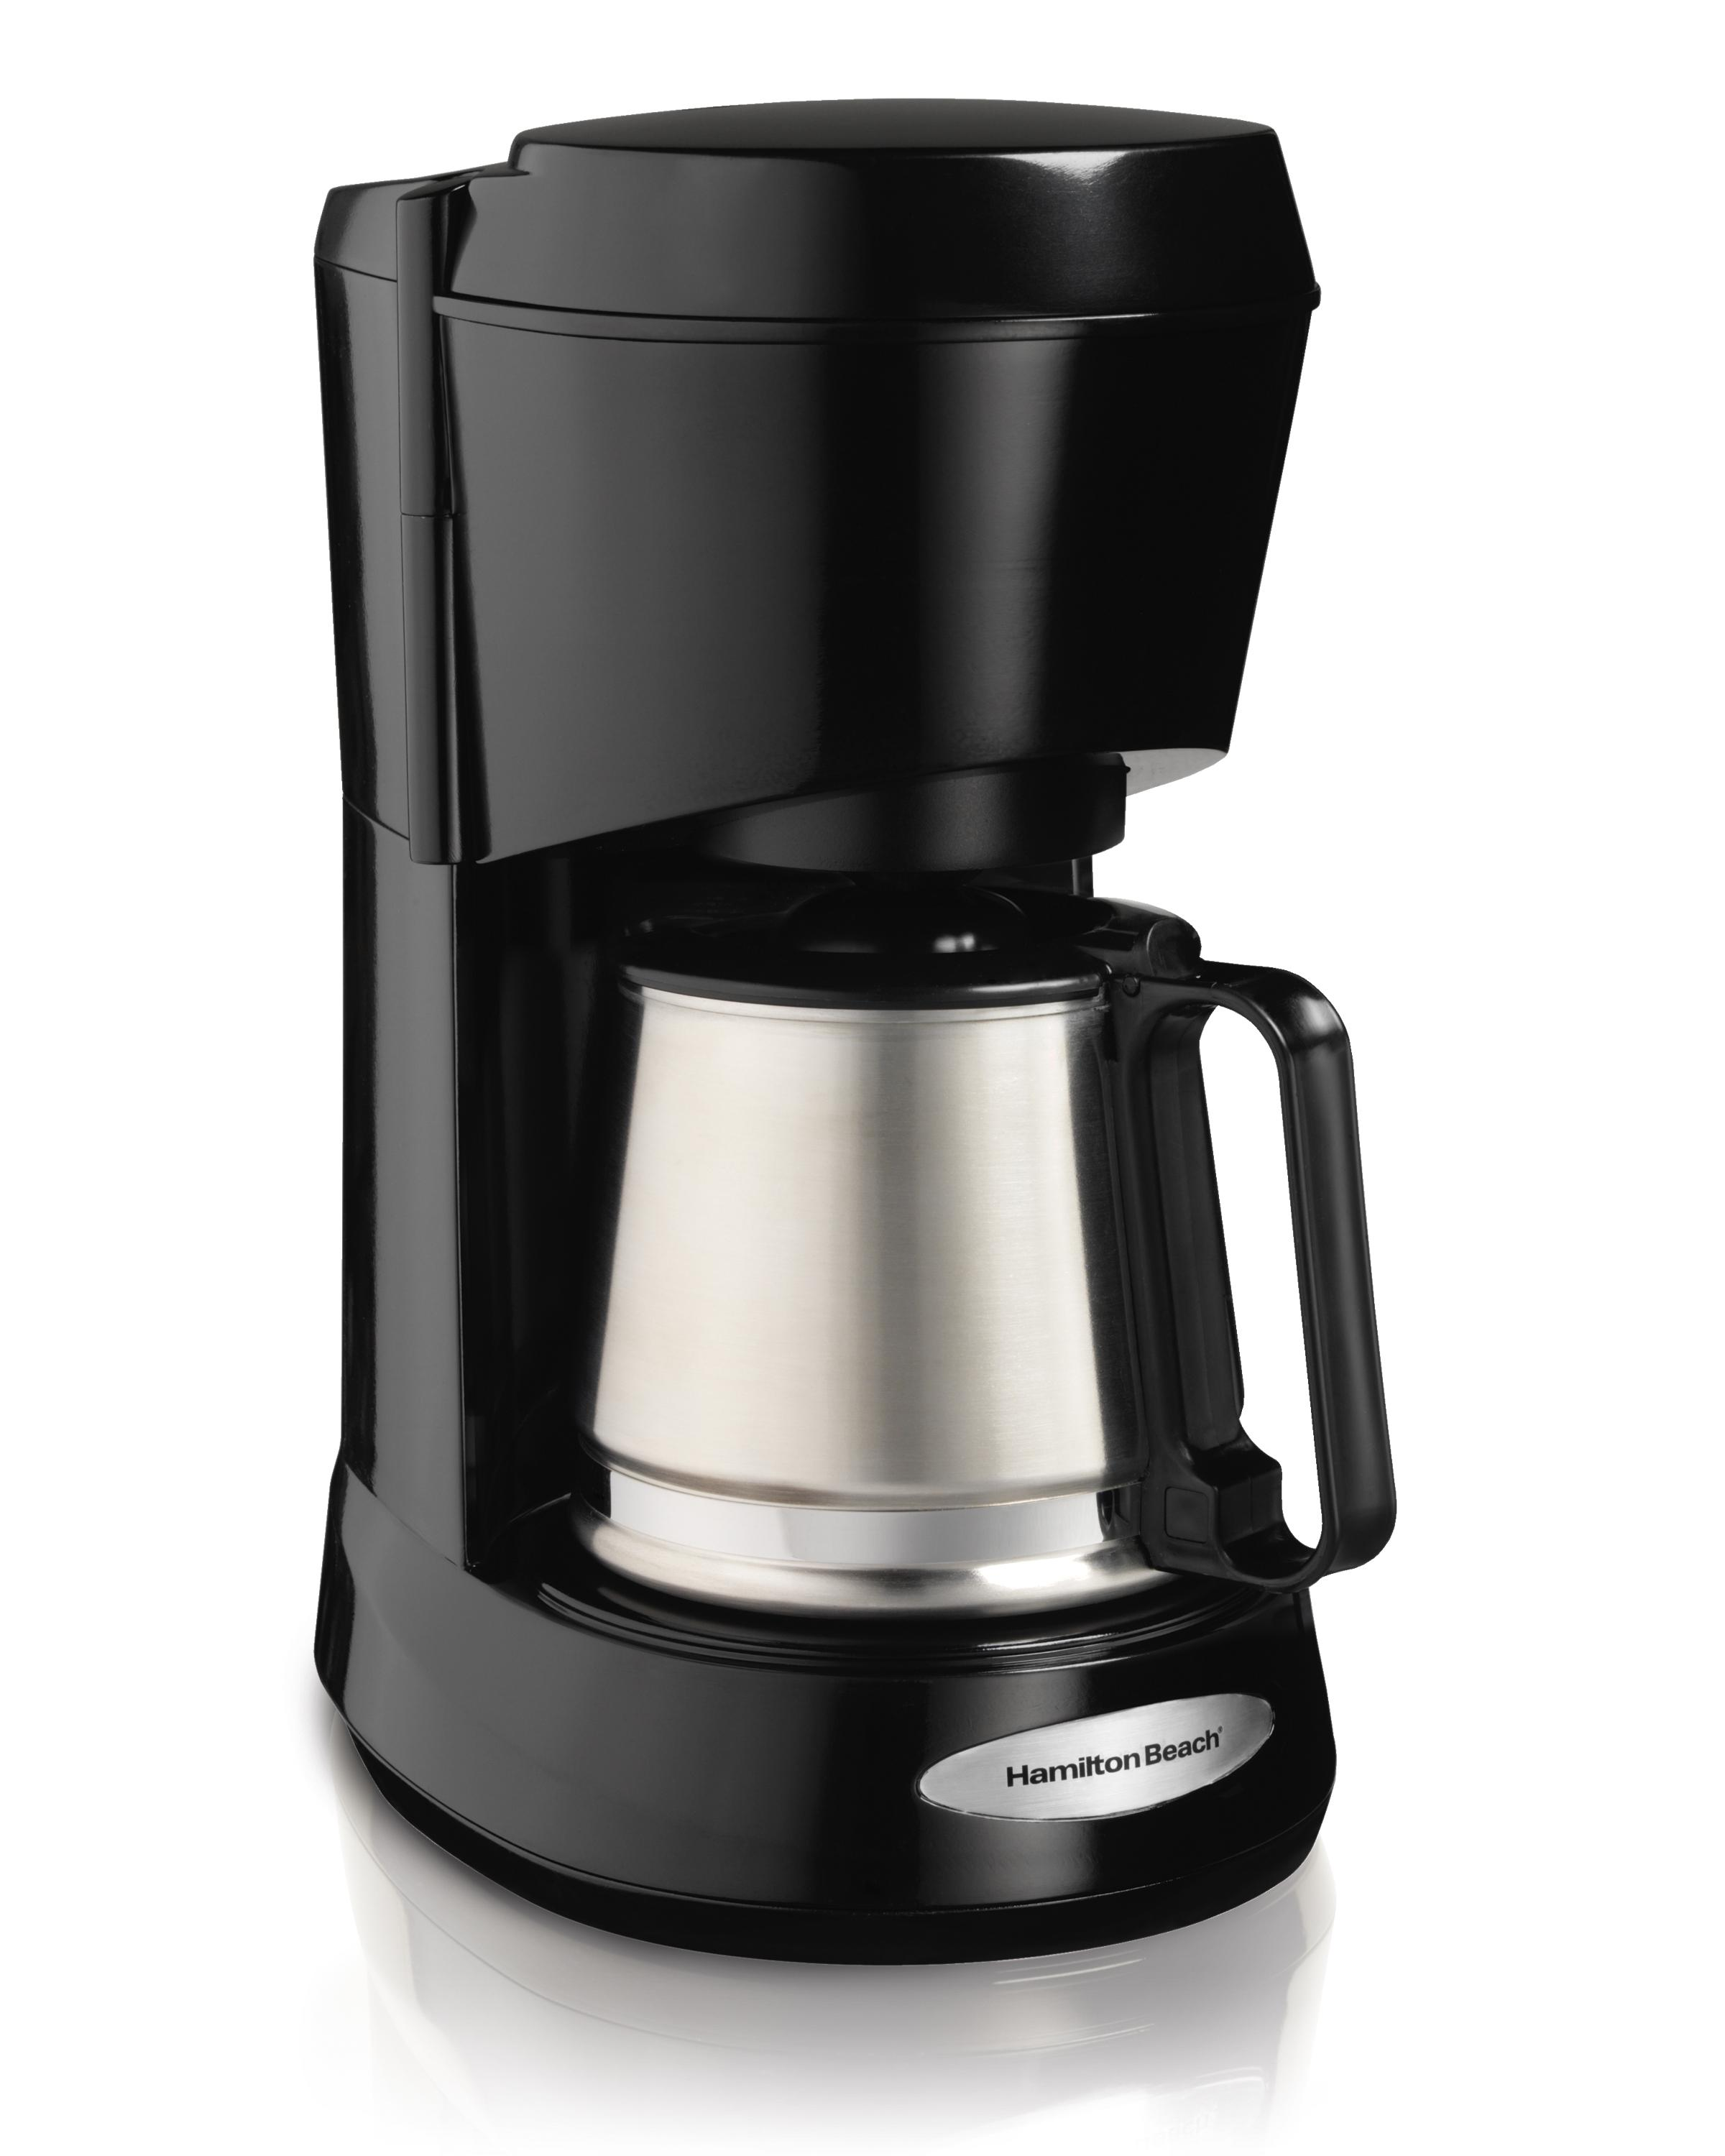 Amazon.com: Hamilton Beach 5-Cup Coffee Maker with Stainless Carafe (48137): Drip Coffeemakers ...